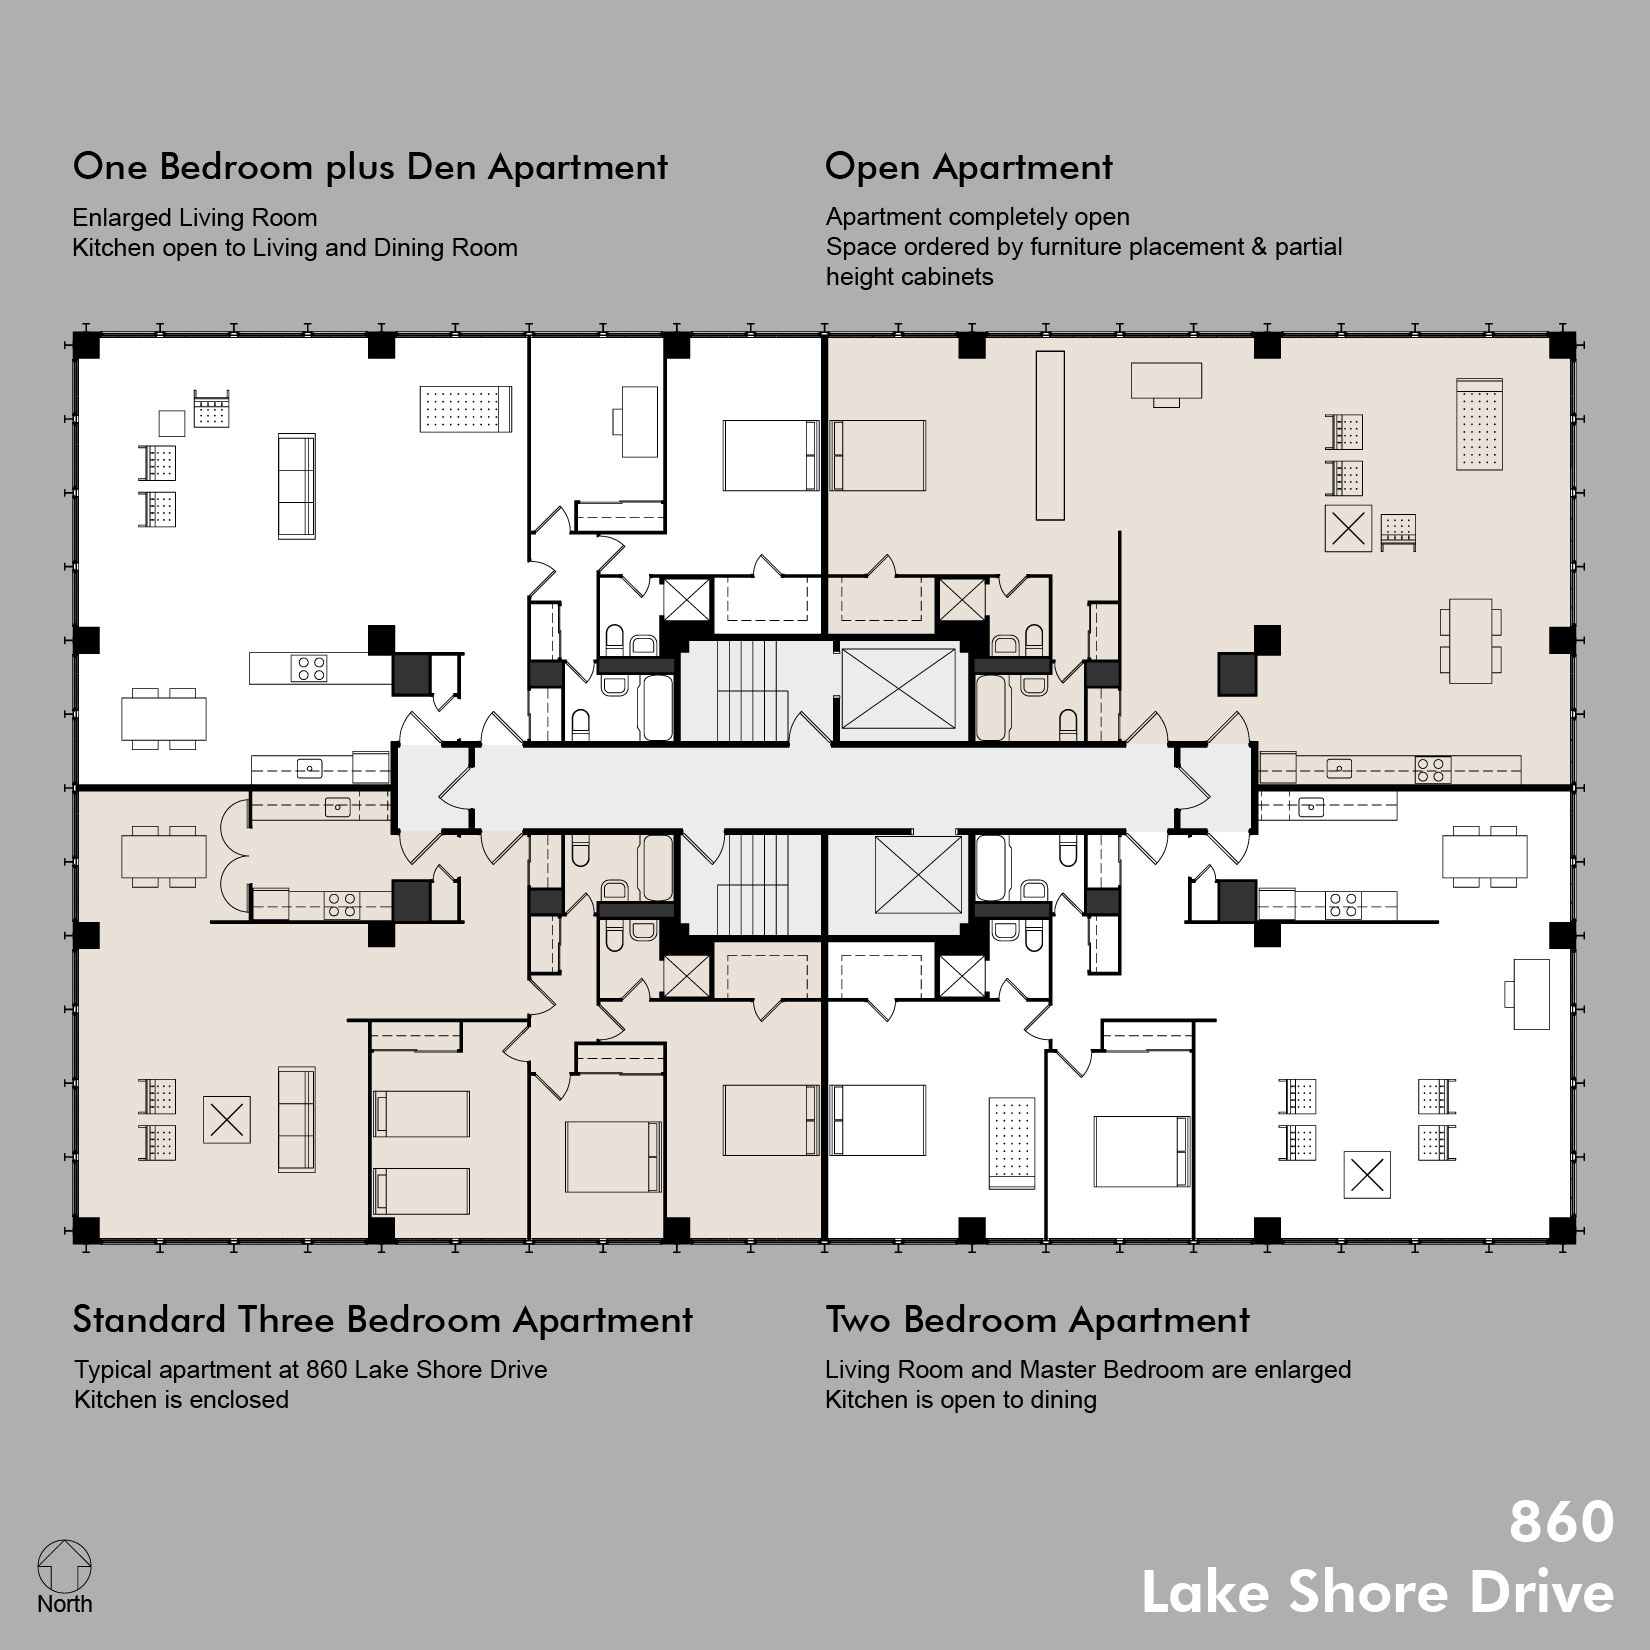 Apartments Floor Plans 860_floor_plans_including_standard_apt